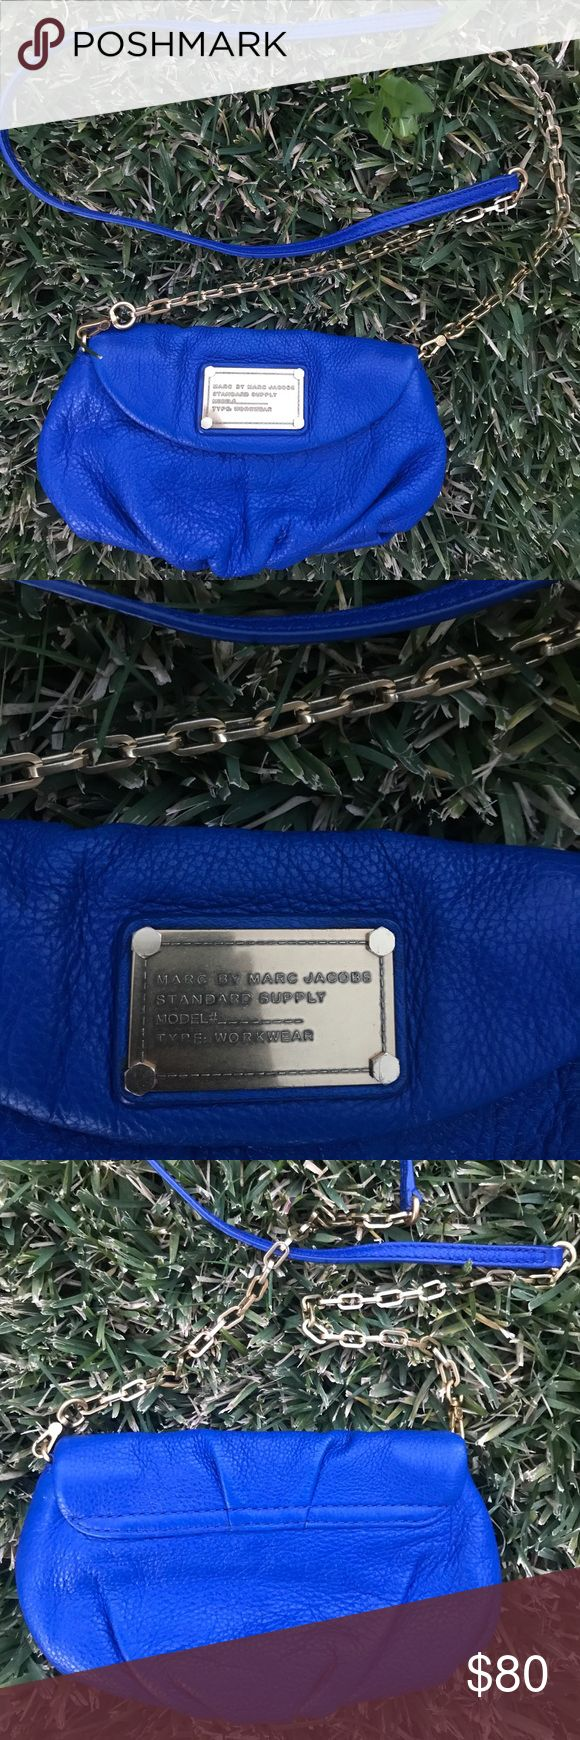 Marc by Marc Jacobs Q Karlie royal blue crossbody Brand new with out tags! NO TRADES. The hard ware is GOLD. Just hard tell in perfect condition. Marc by Marc Jacobs Bags